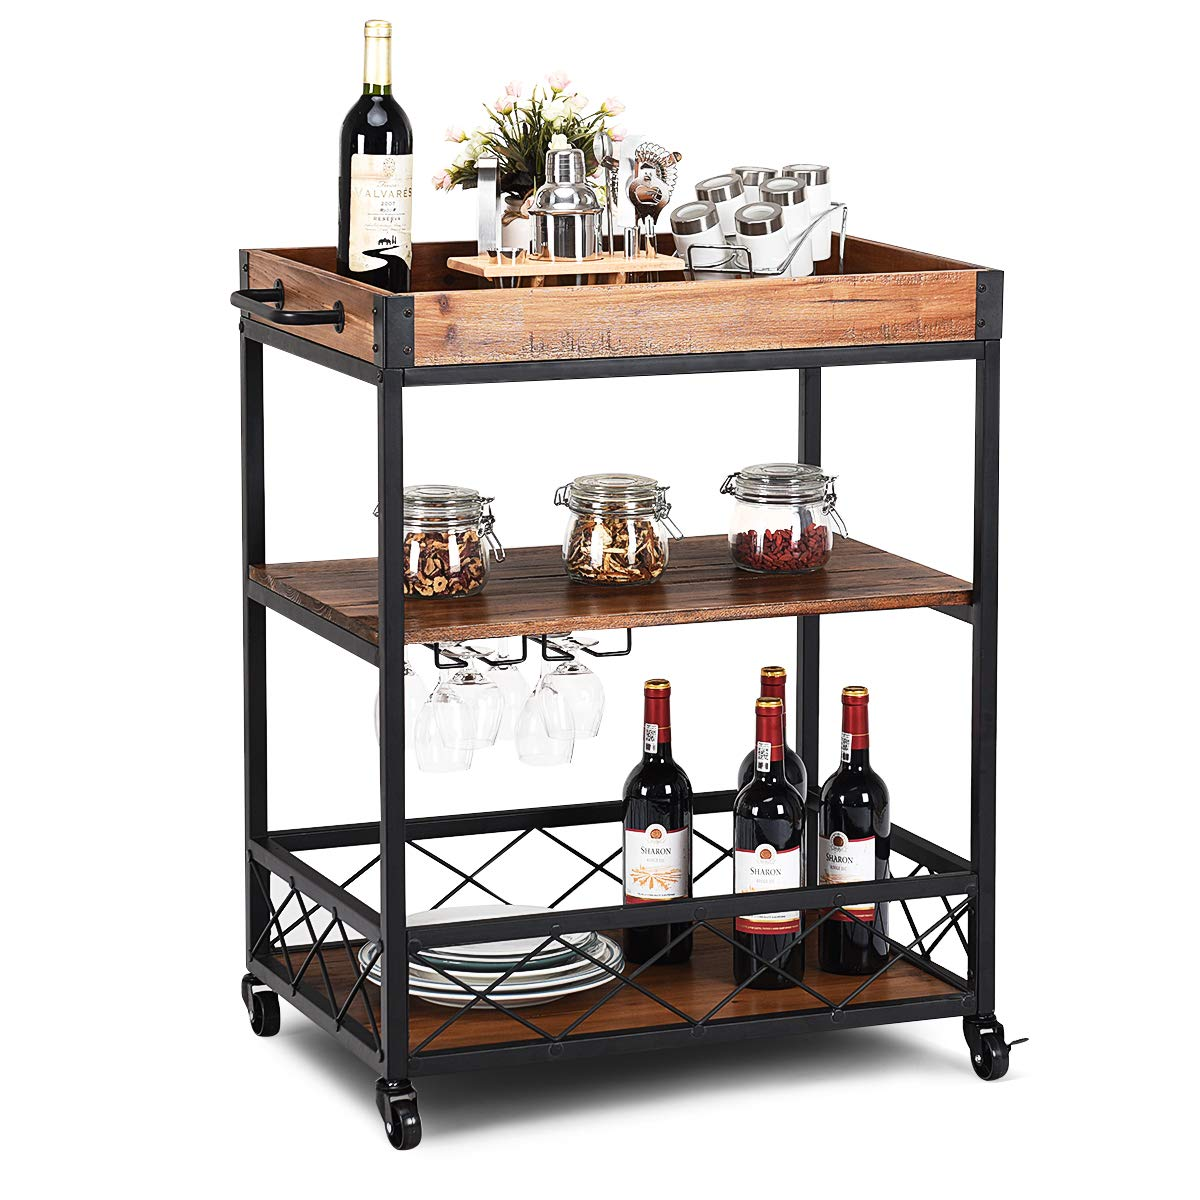 Giantex Kitchen Trolley Cart Island Rolling Serving Carts Utility Cart 3 Tier Storage Shelf with Glass Holde, Handle Racks, Lockable Caster Wheels Kitchen Carts Islands w/Removable Wood Box Container